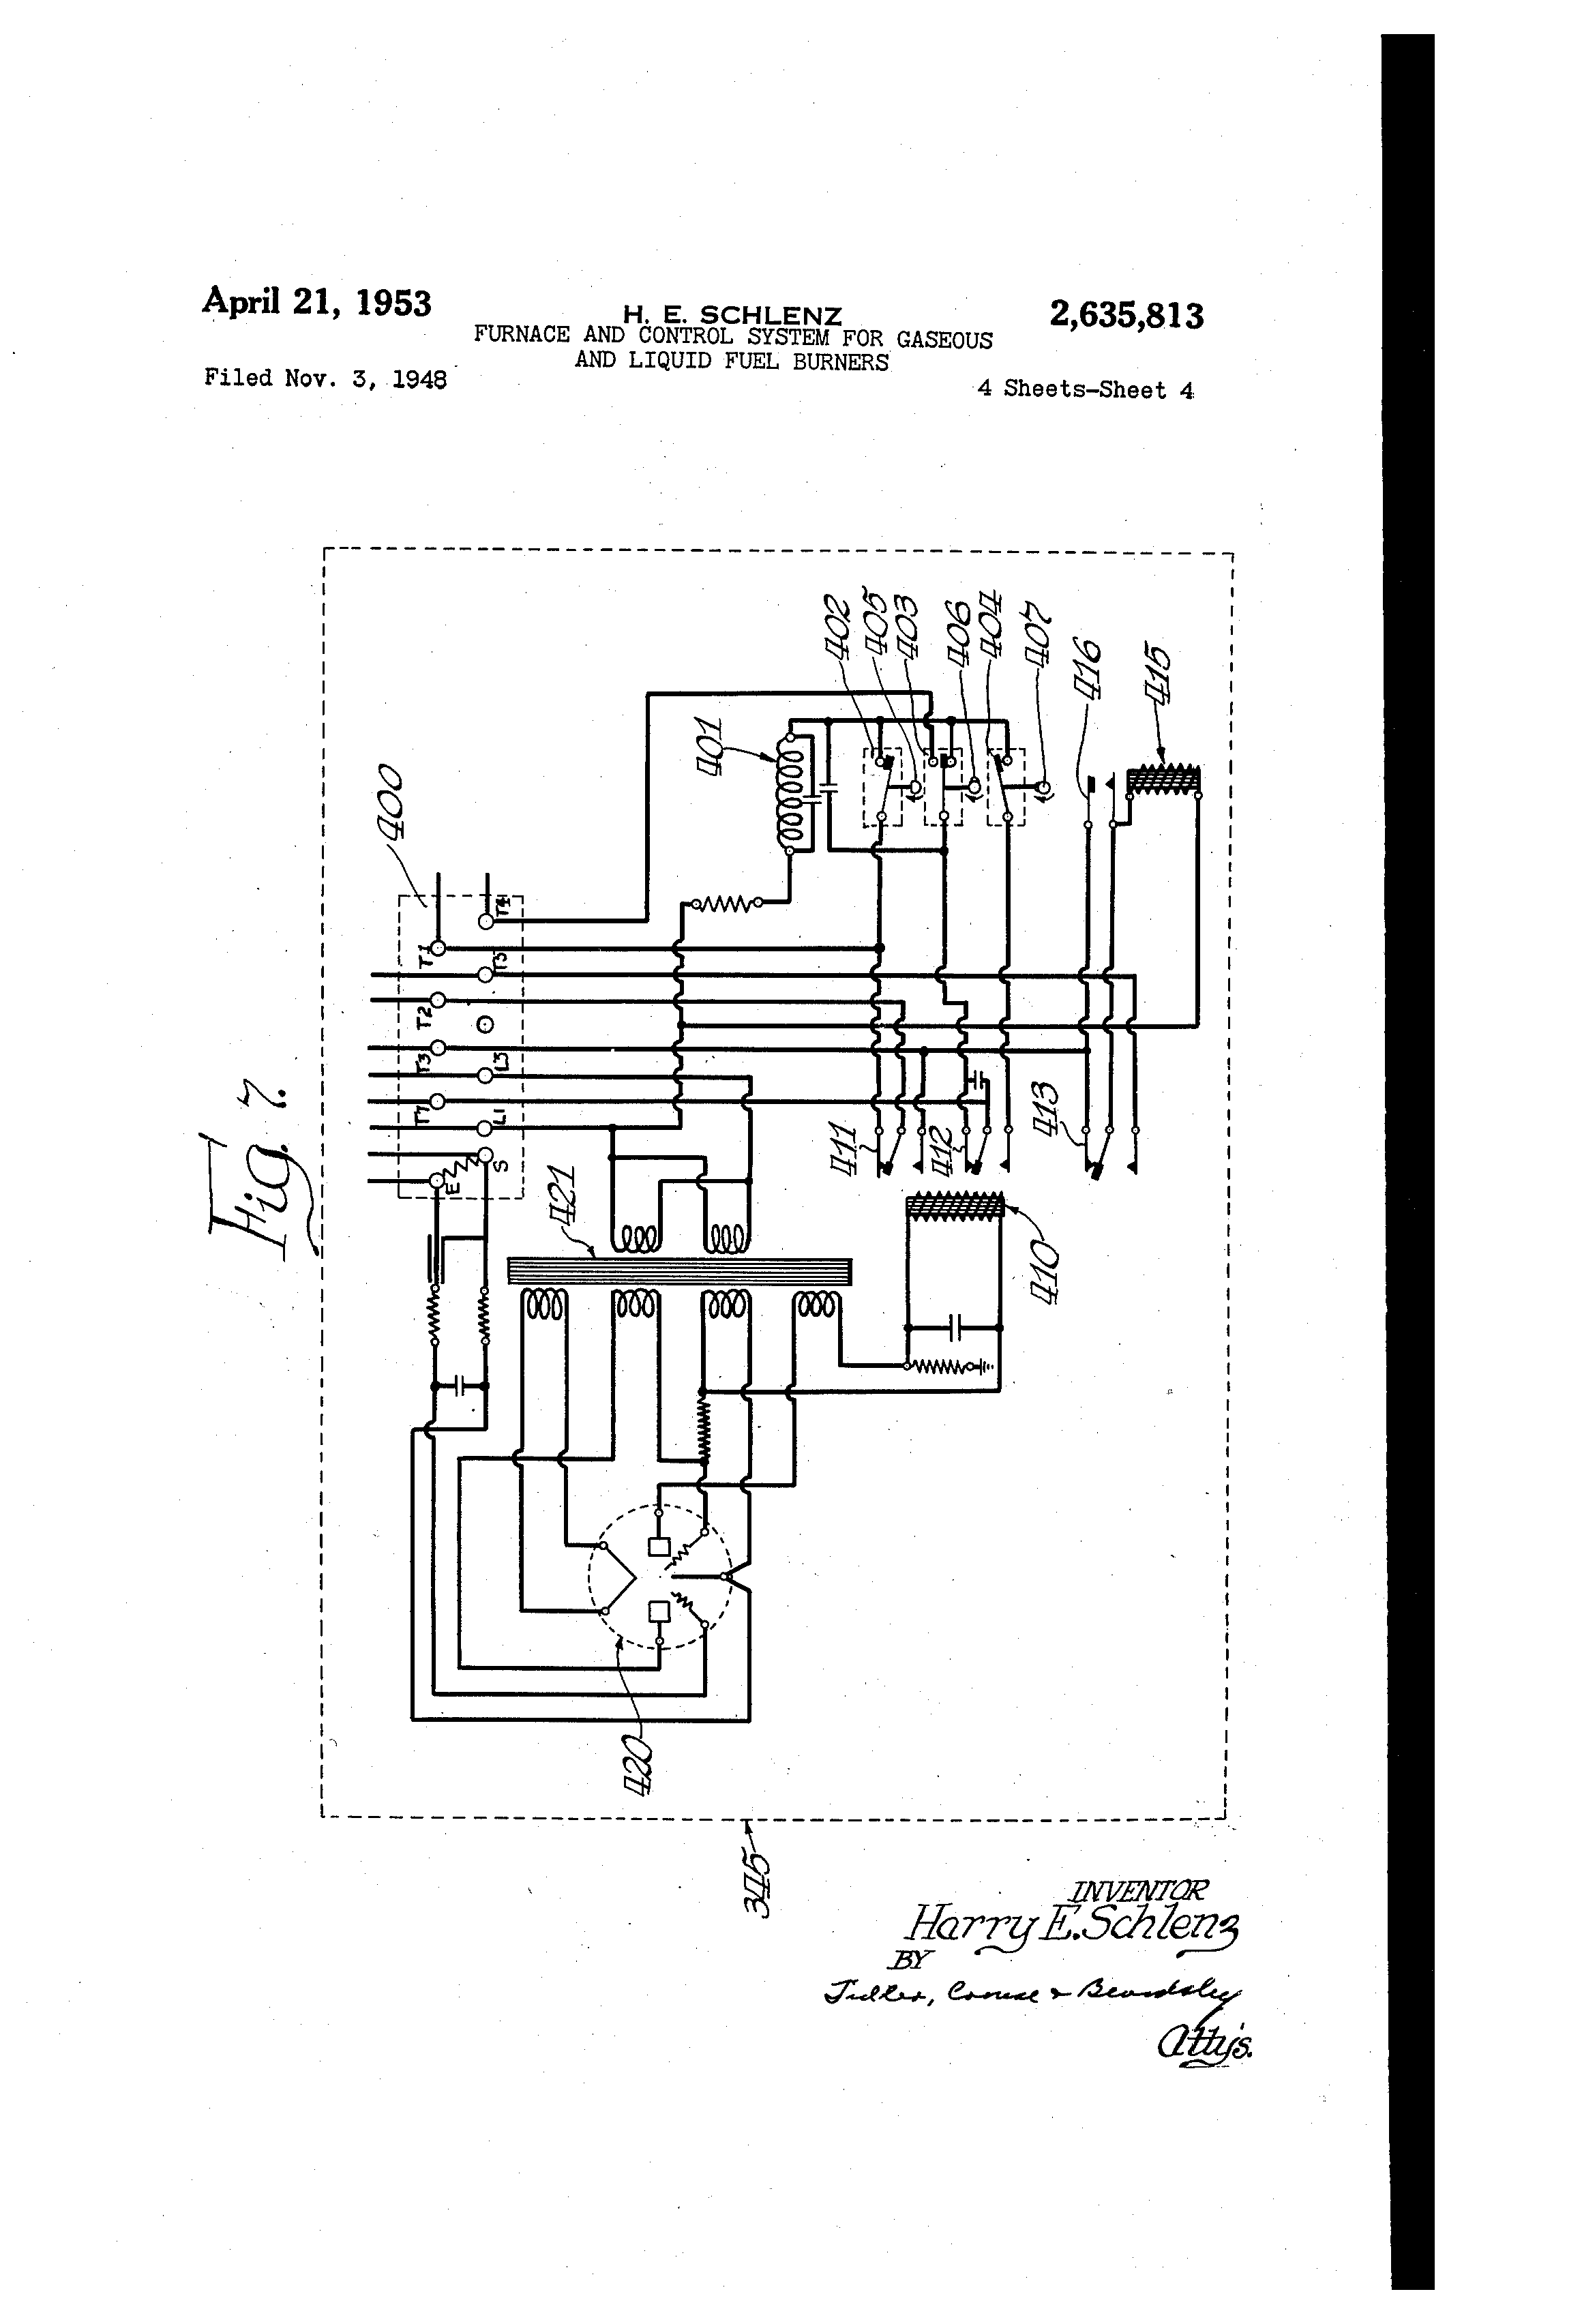 Unicell Wiring Diagram Schematic Diagrams Knapheide Oil Furnace Parts Olsen